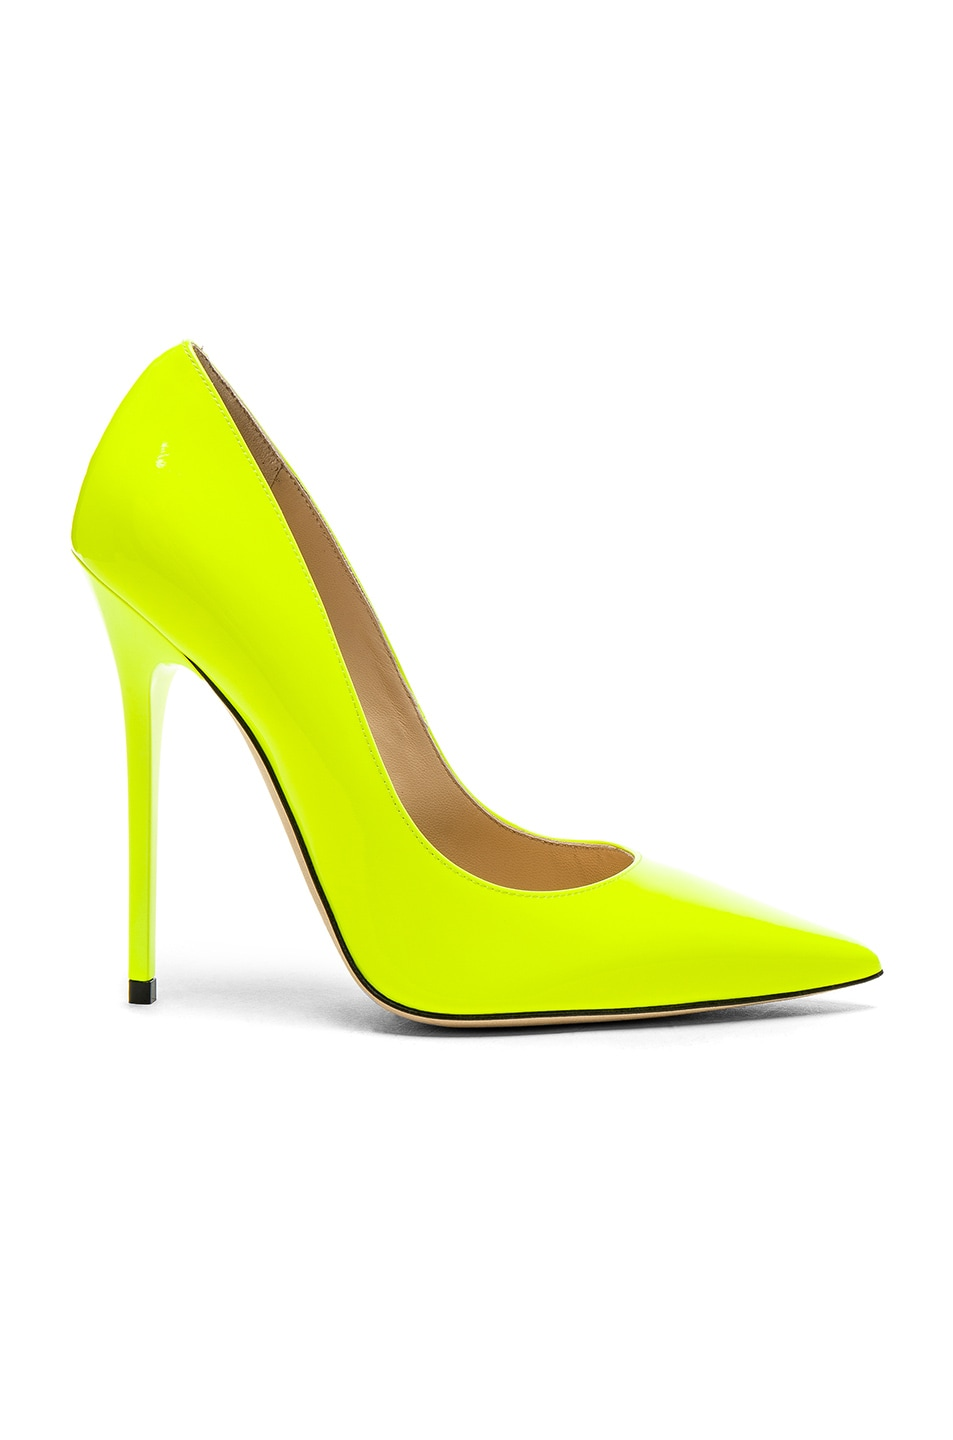 d7676d2ae0b Image 1 of Jimmy Choo Neon Patent Leather Anouk Heels in Shocking Yellow …